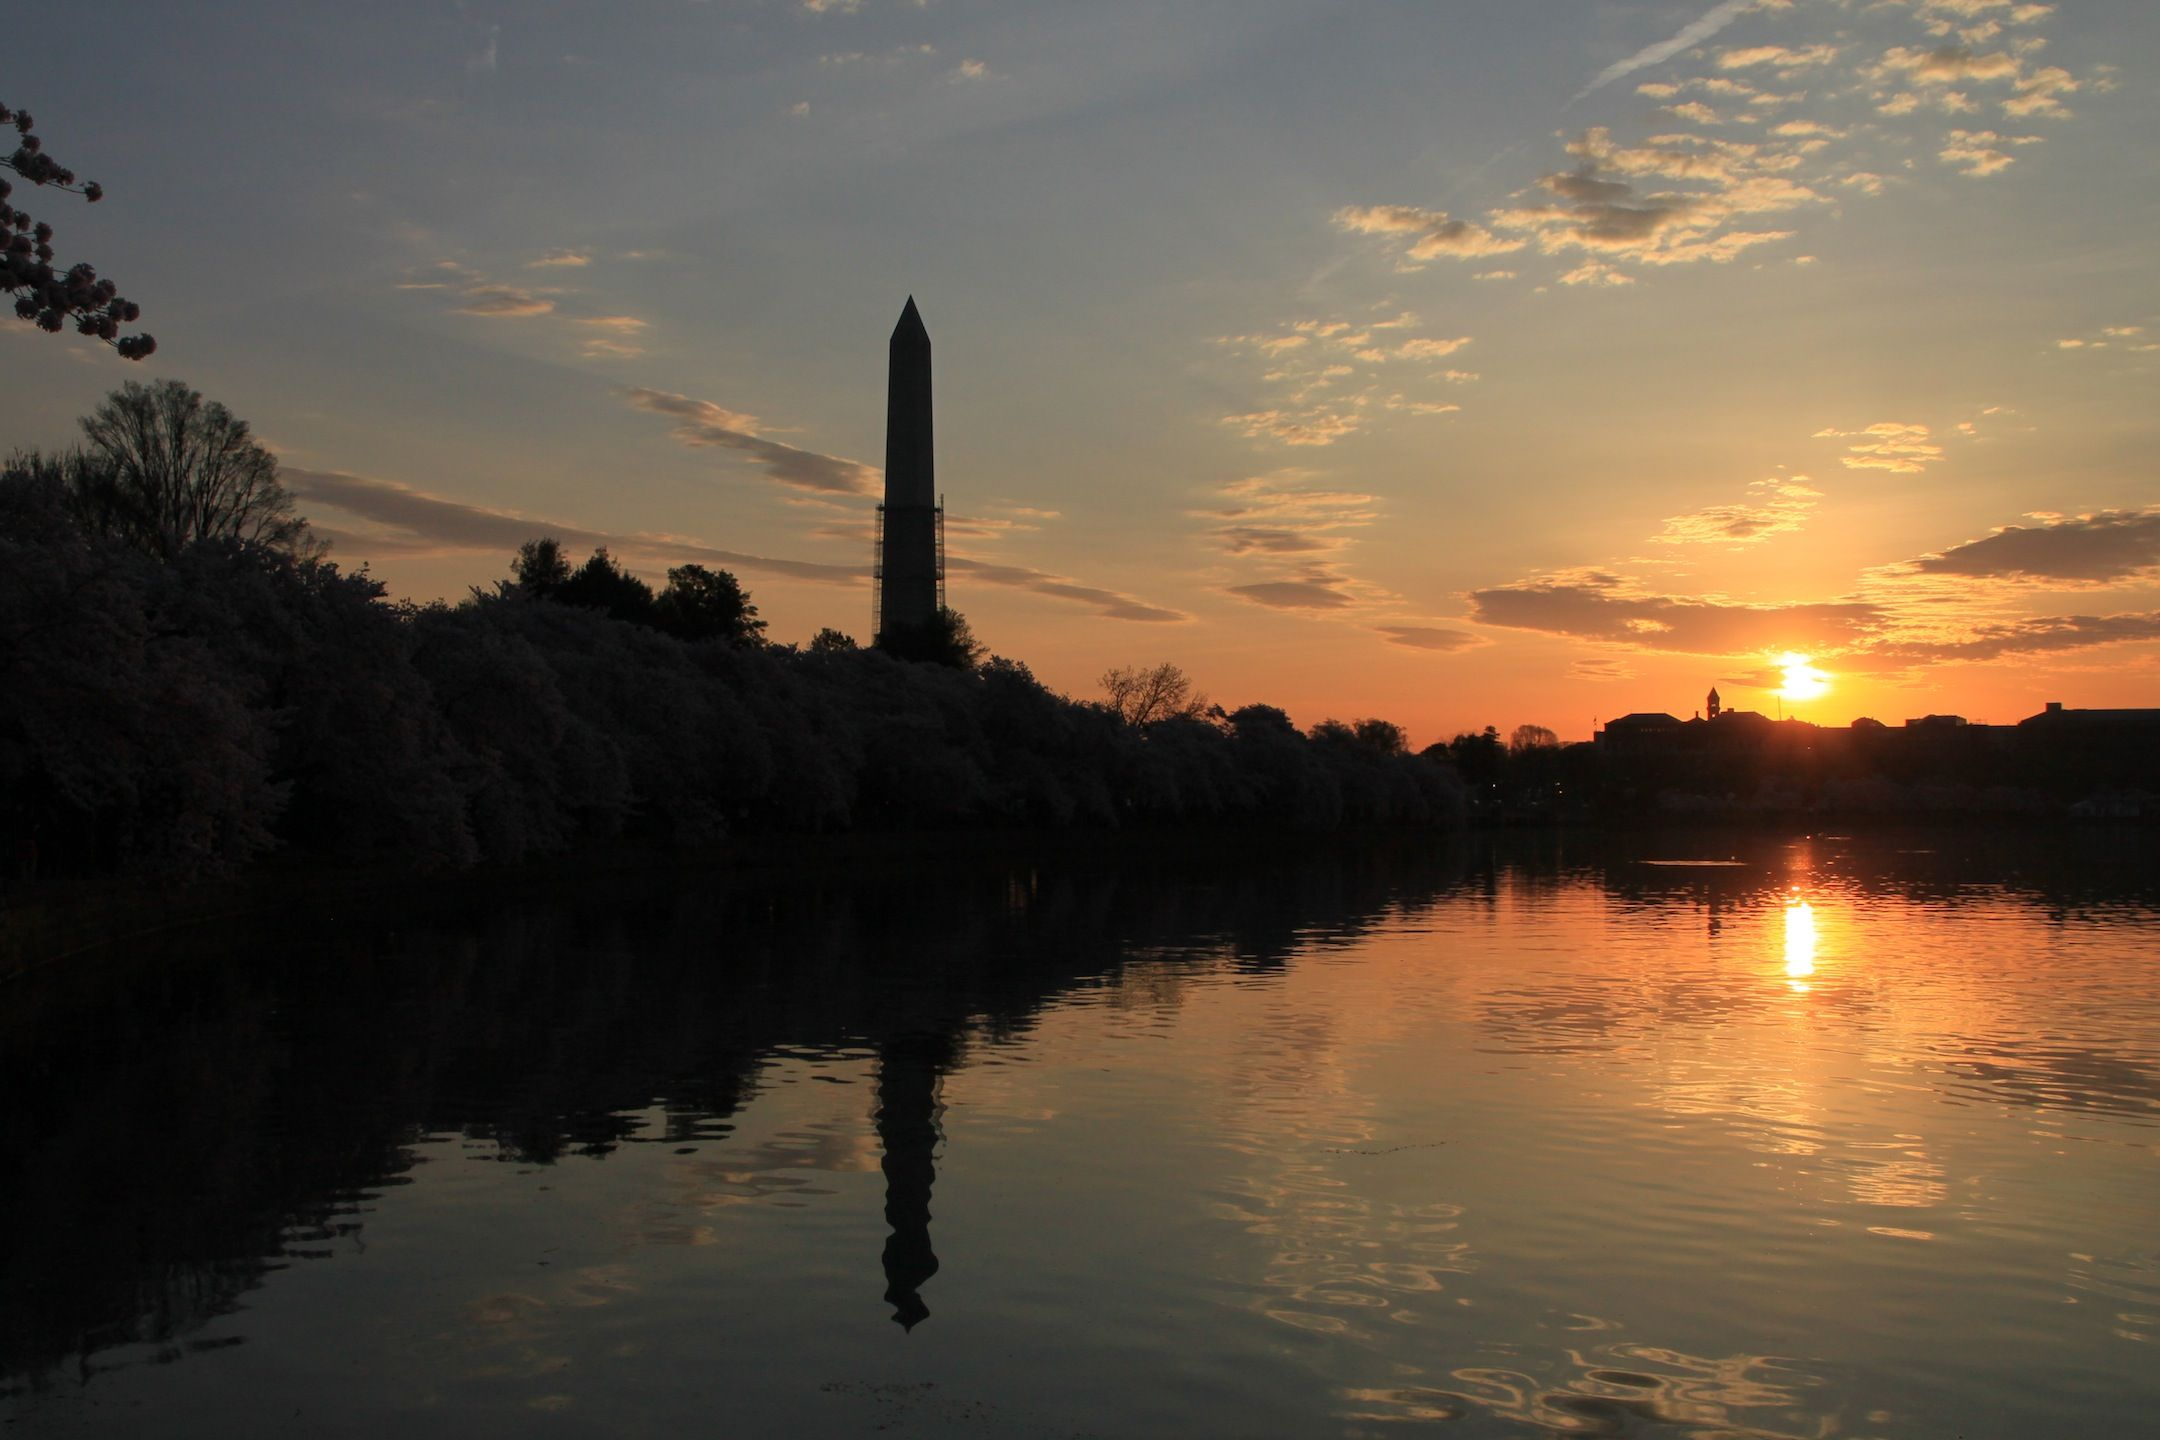 Early morning over the Tidal Basin in Washington DC